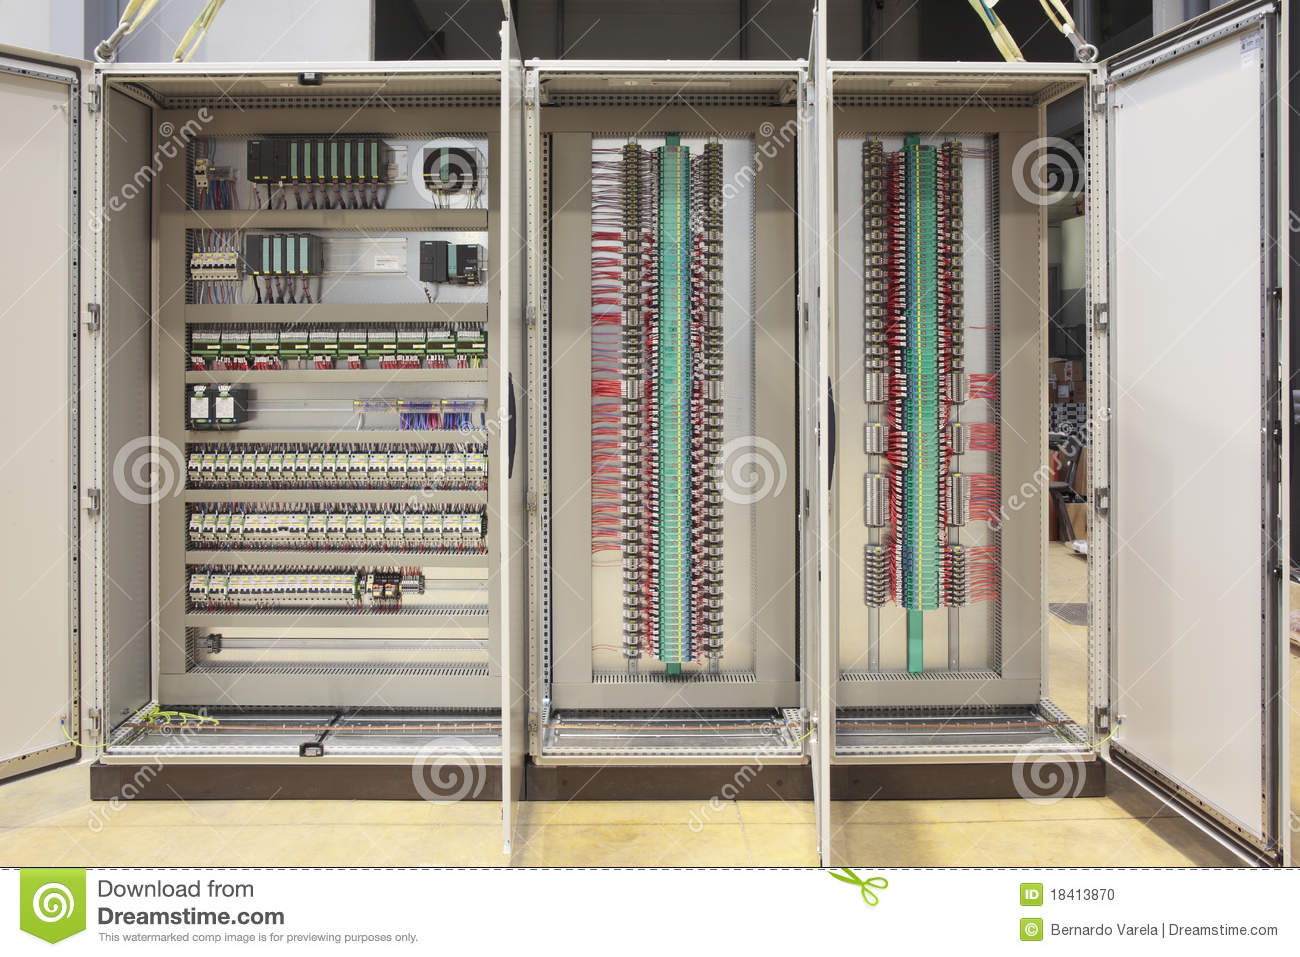 Plc And Barriers Panel Board Stock Photo Image Of Manufacture Wiring